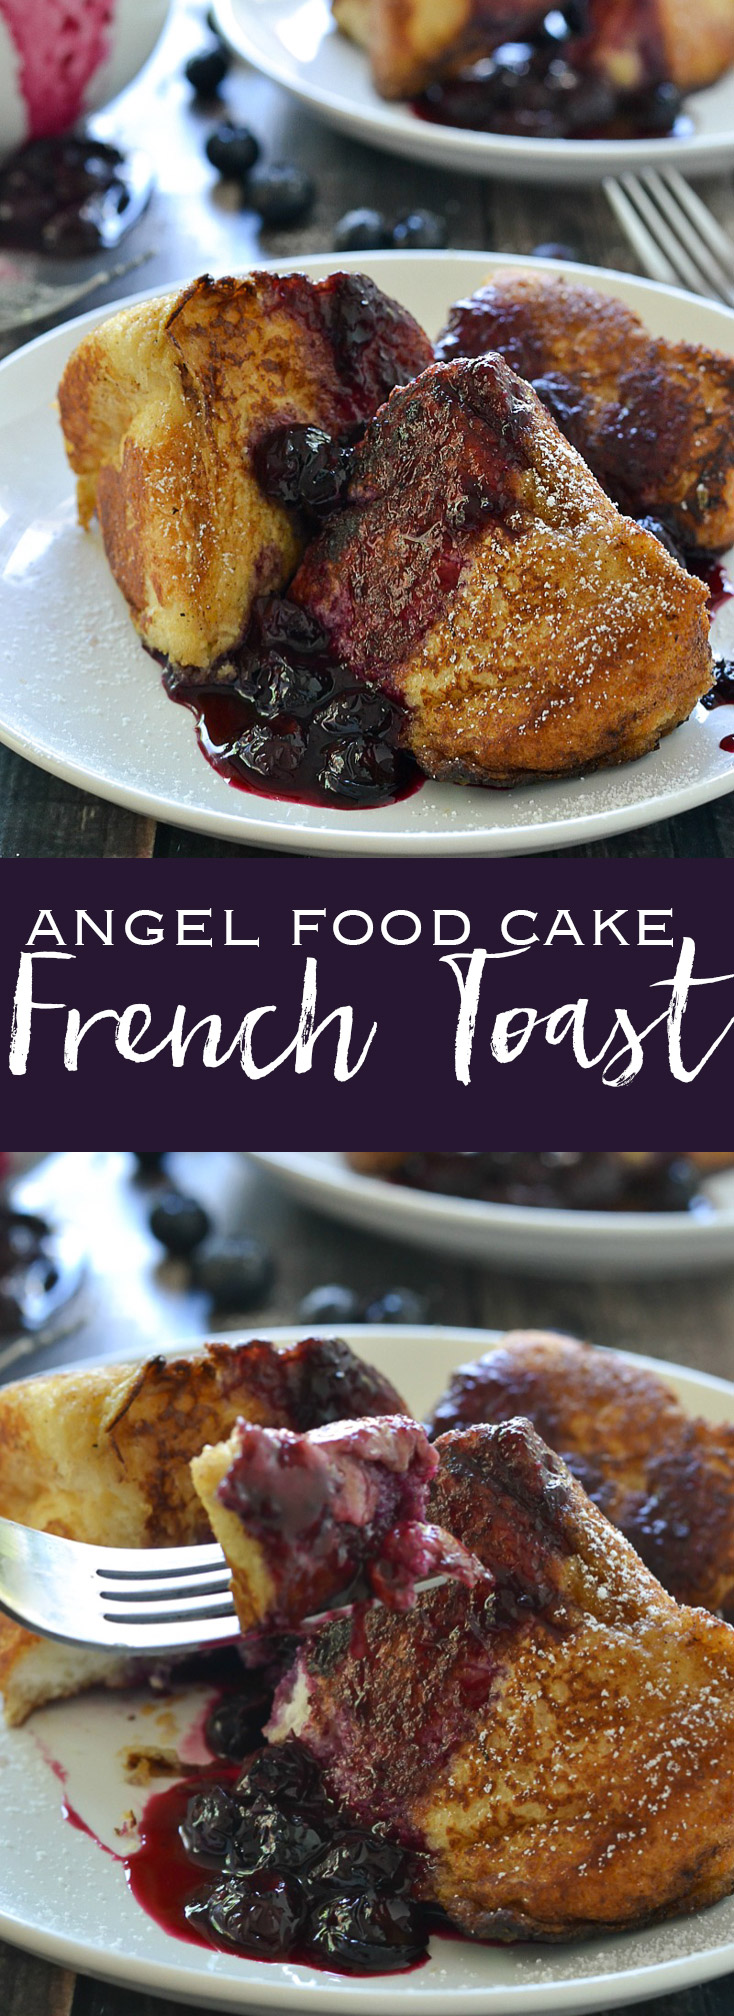 Angel Food Cake French Toast w/ Blueberry Compote - this is SO good! www.motherthyme.com